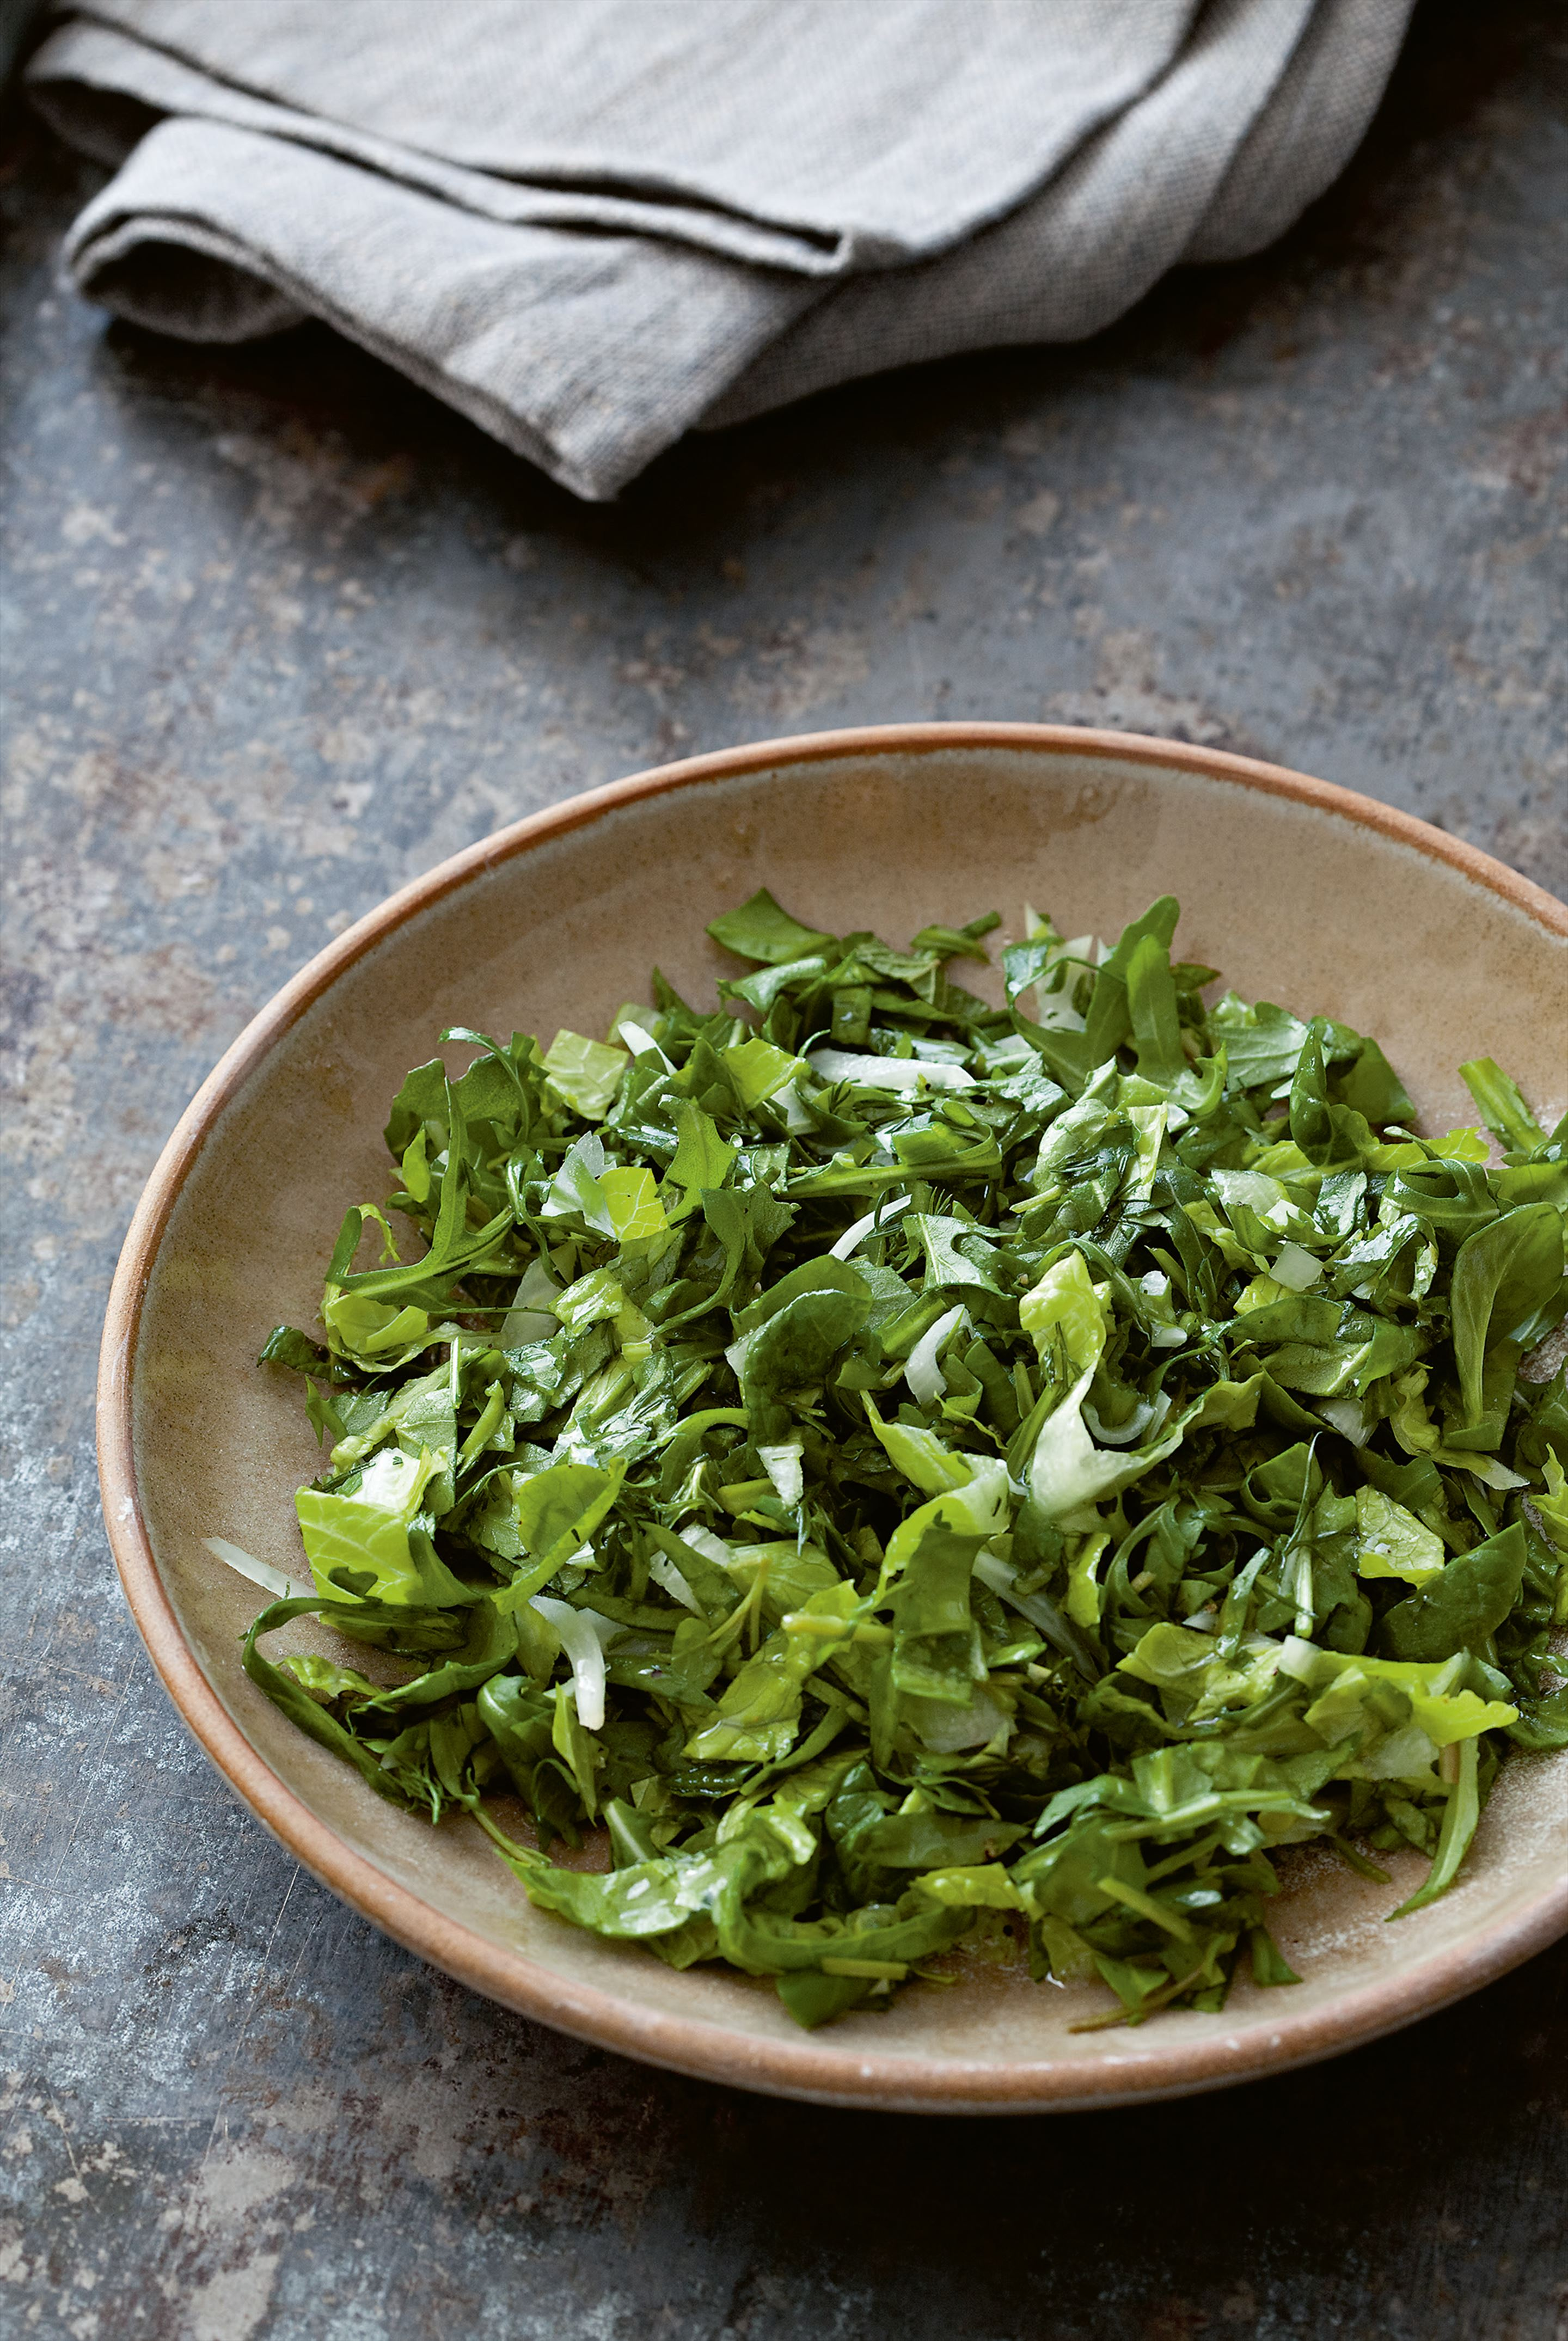 Green herb salad